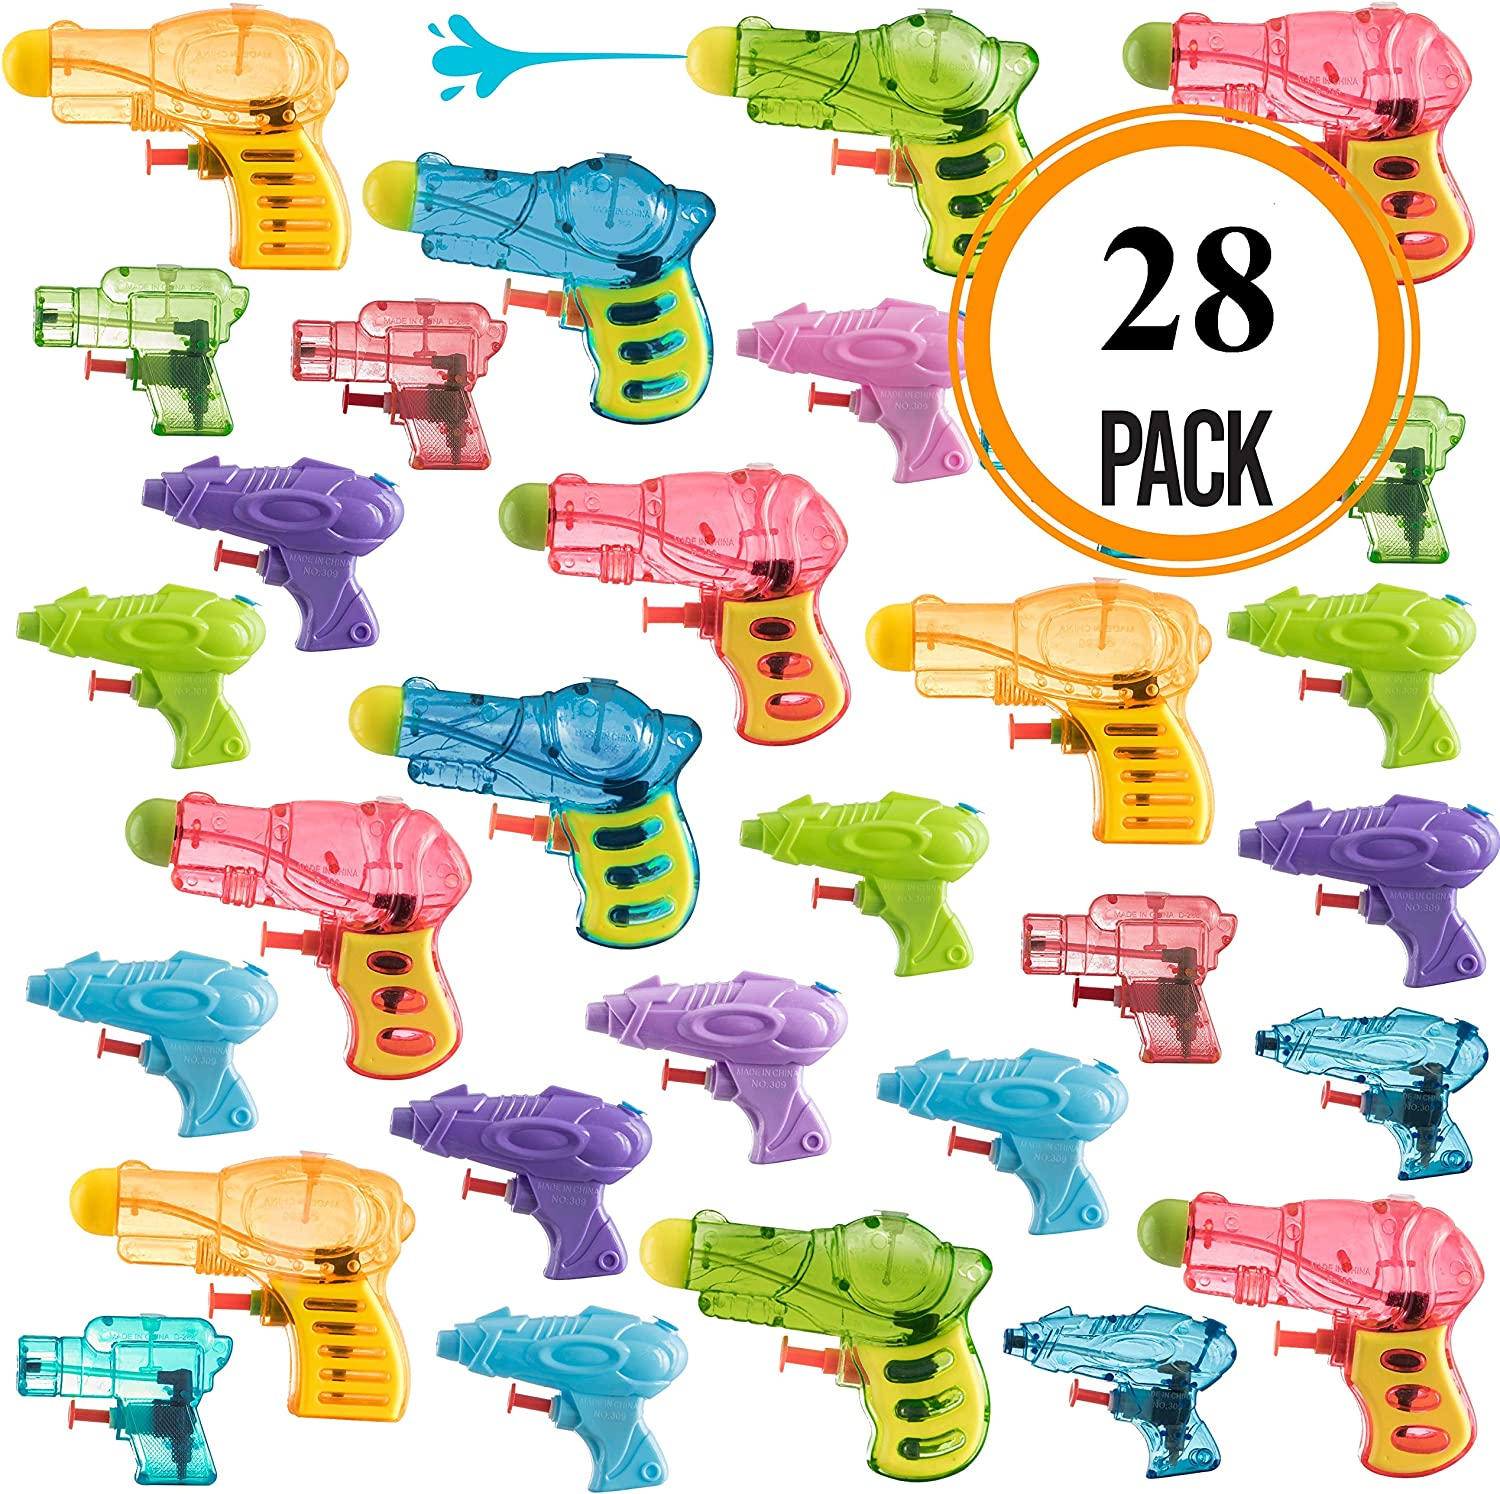 Pack of 28 Assorted Water Guns Pool Water Shooters and Water Blasters Combo Set of Water Squirt Toy: Toys & Games